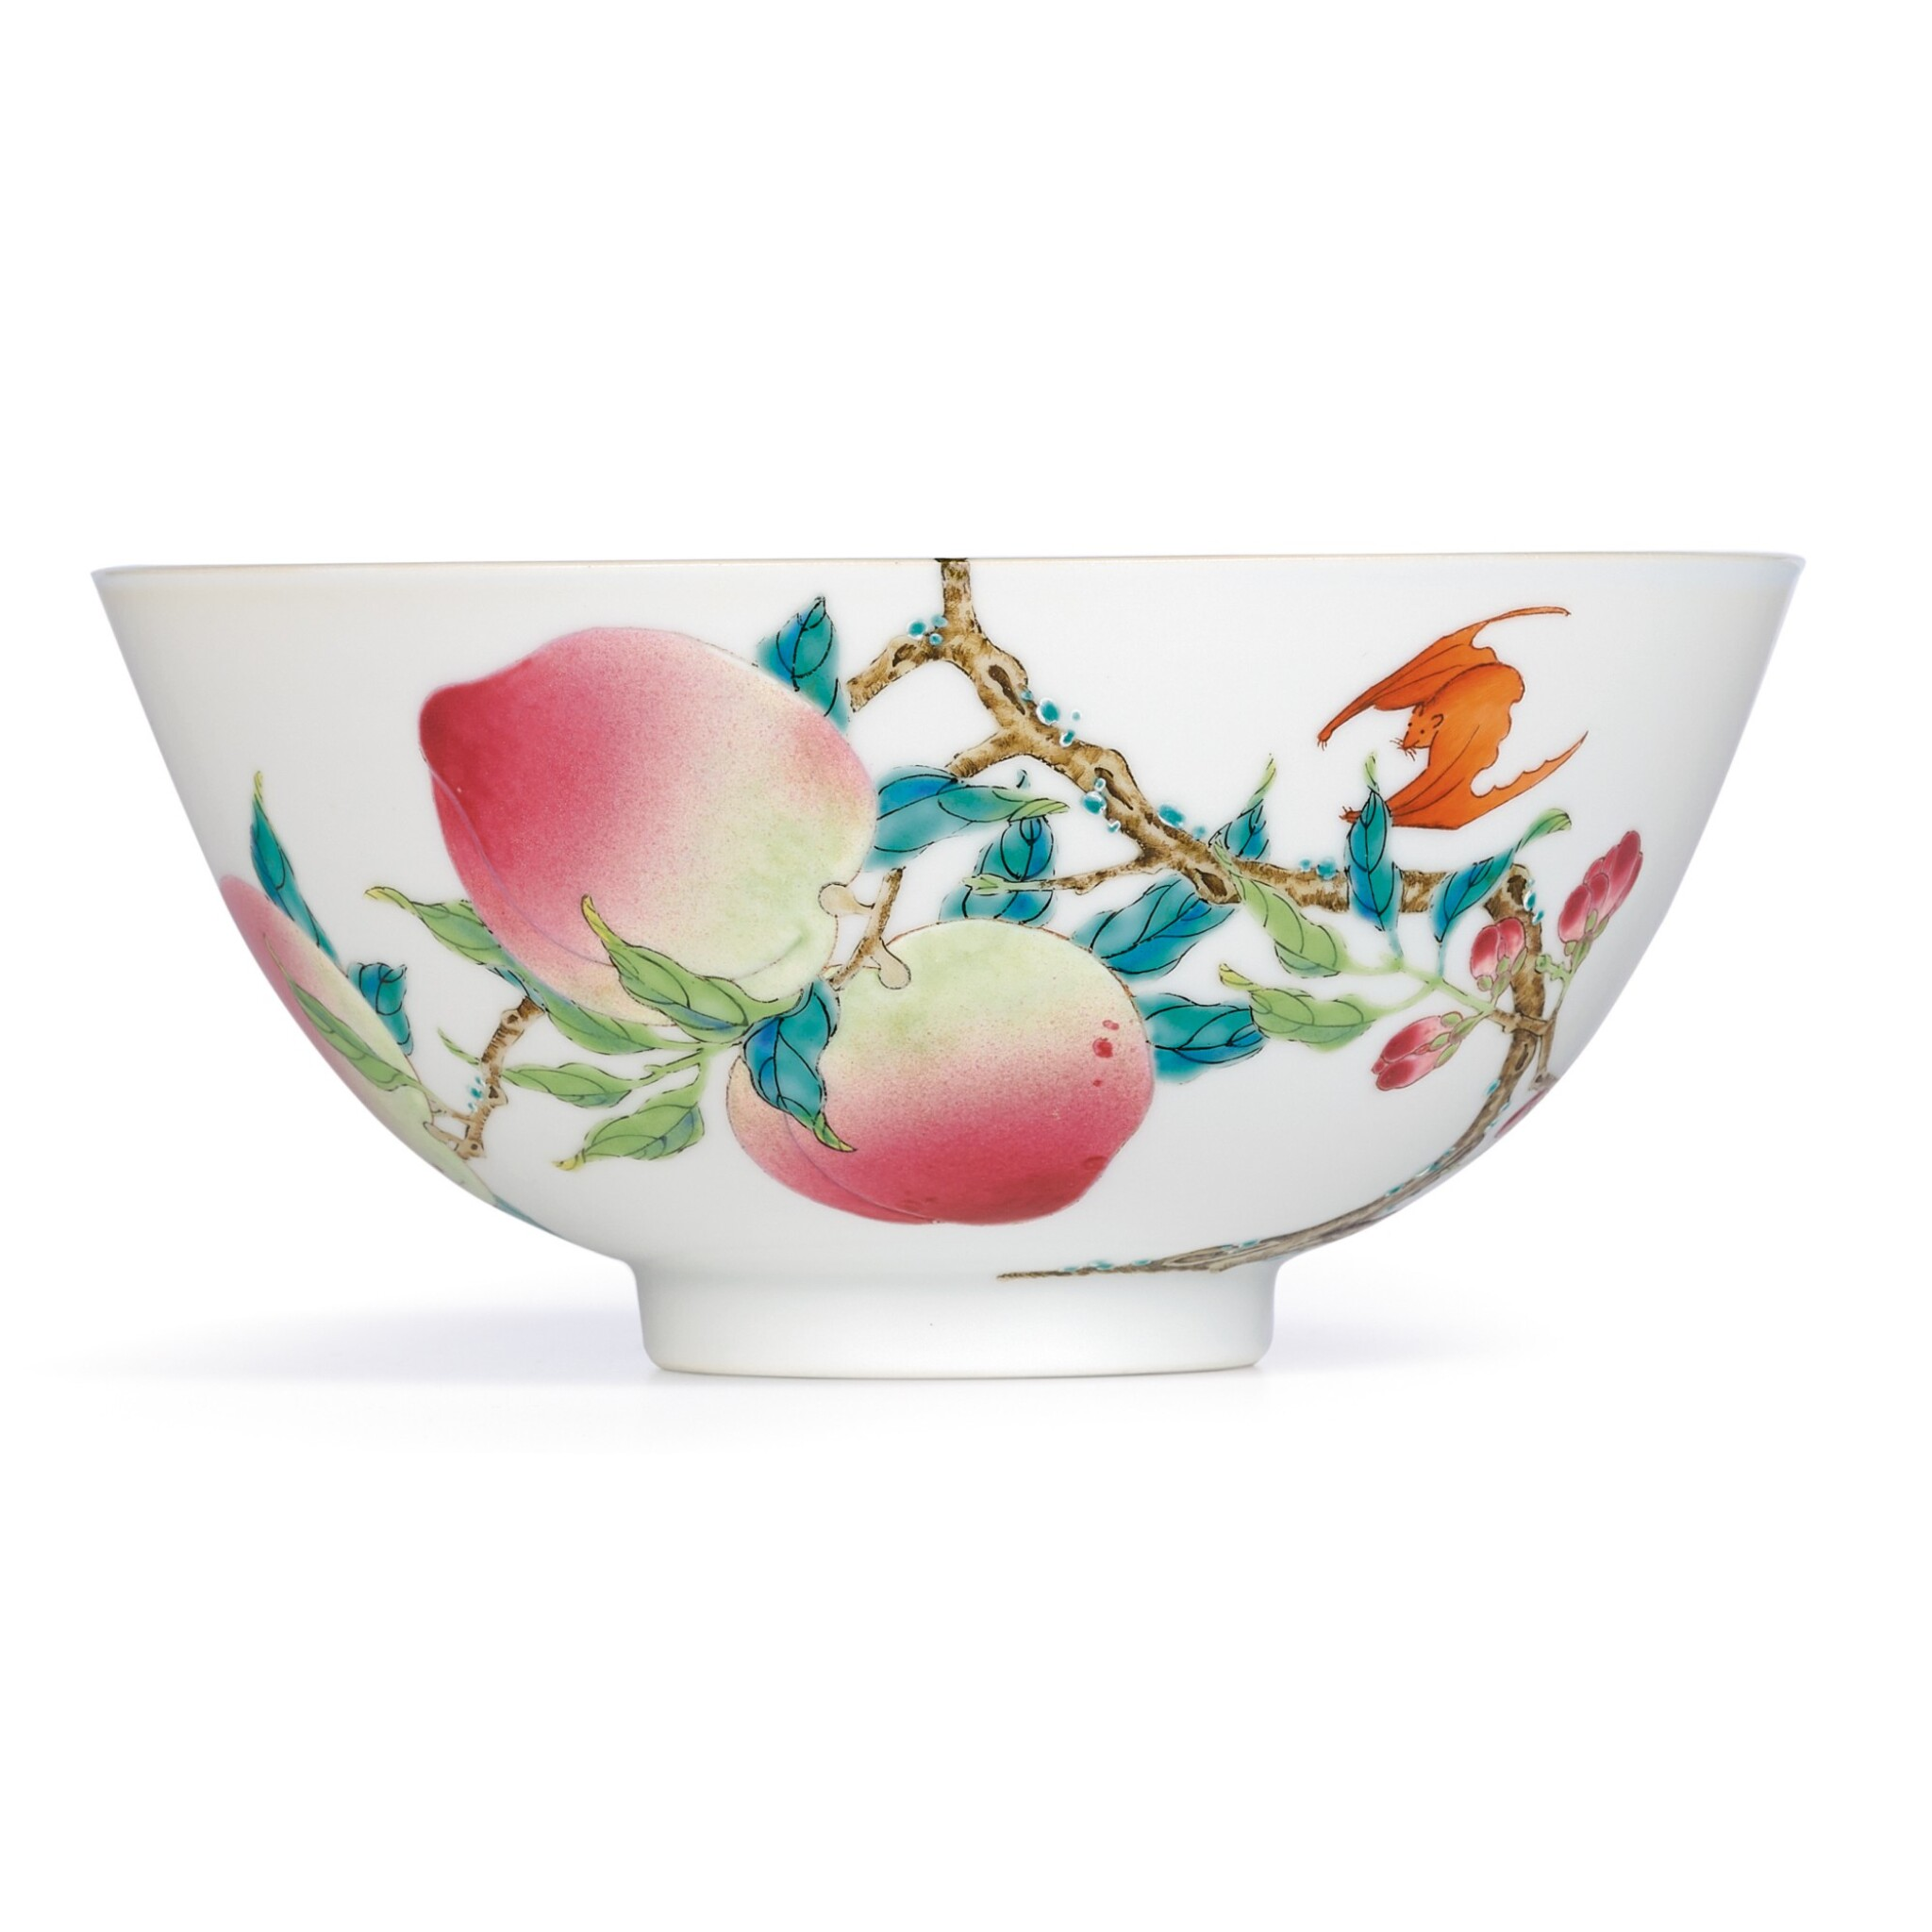 View full screen - View 1 of Lot 3622. AN EXTREMELYFINE AND RARE FAMILLE-ROSE 'PEACH' BOWL MARK AND PERIOD OF YONGZHENG | 清雍正 粉彩過枝福壽雙全盌 《大清雍正年製》款.